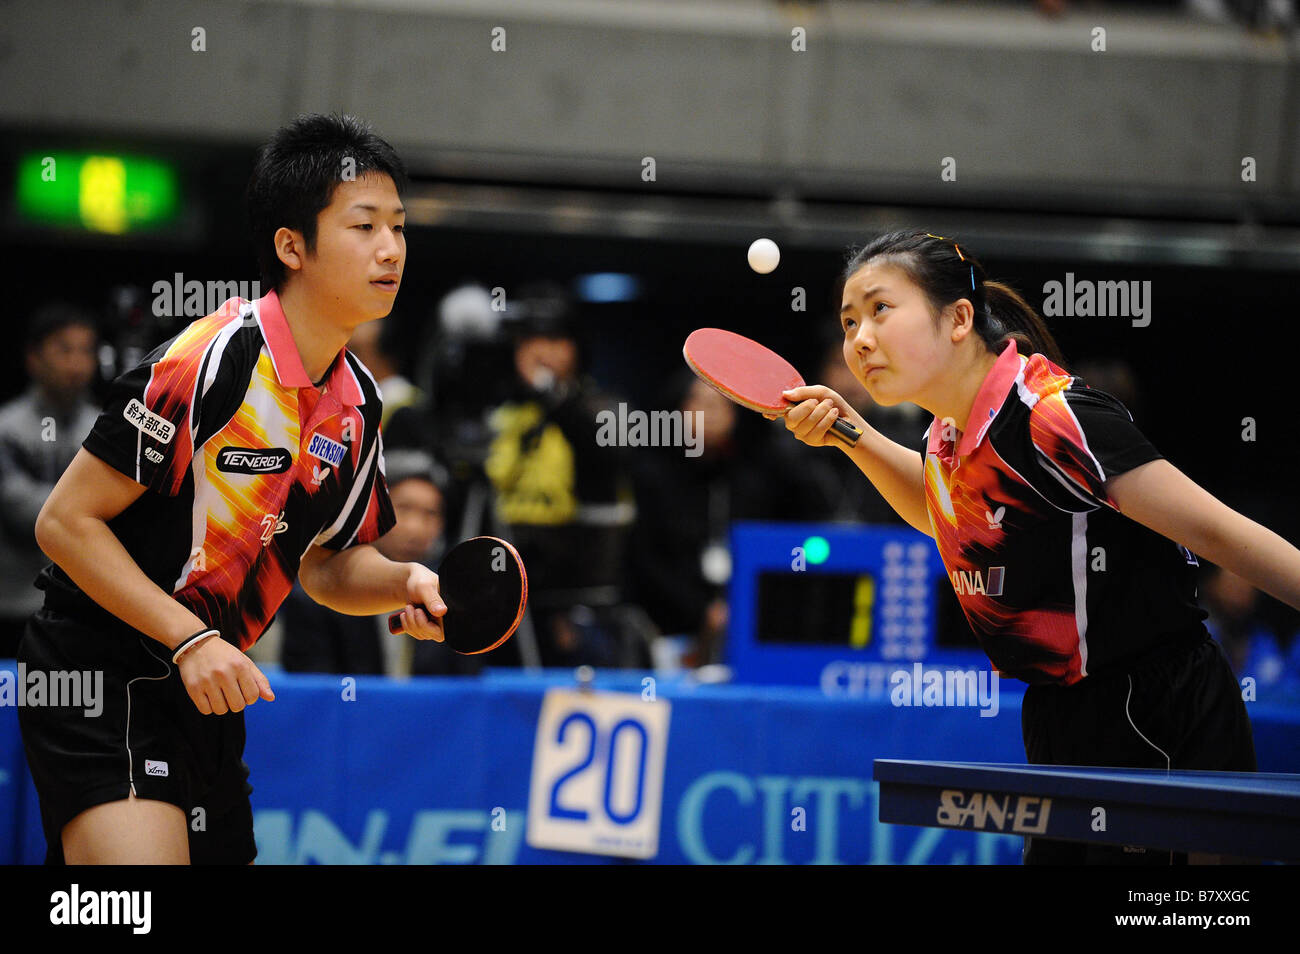 L to R Jun Mizutani Ai Fukuhara JANUARY 14 2009 Table Tennis All Japan Table Tennis Championship Mixed Doubles at - Stock Image